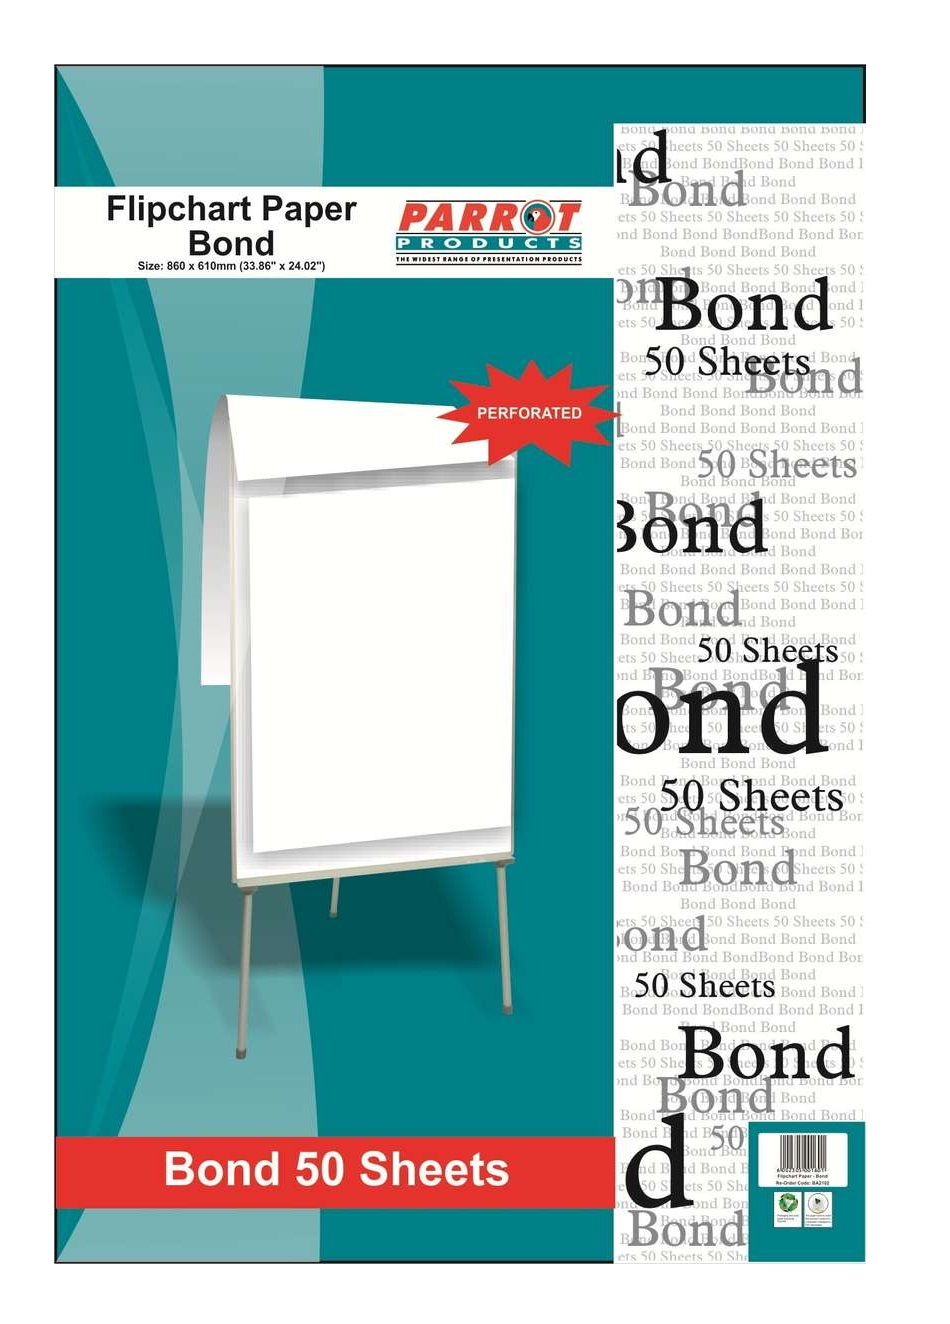 Parrot Flipchart Paper Bond 50 Sheets 860*610mm 60gsm